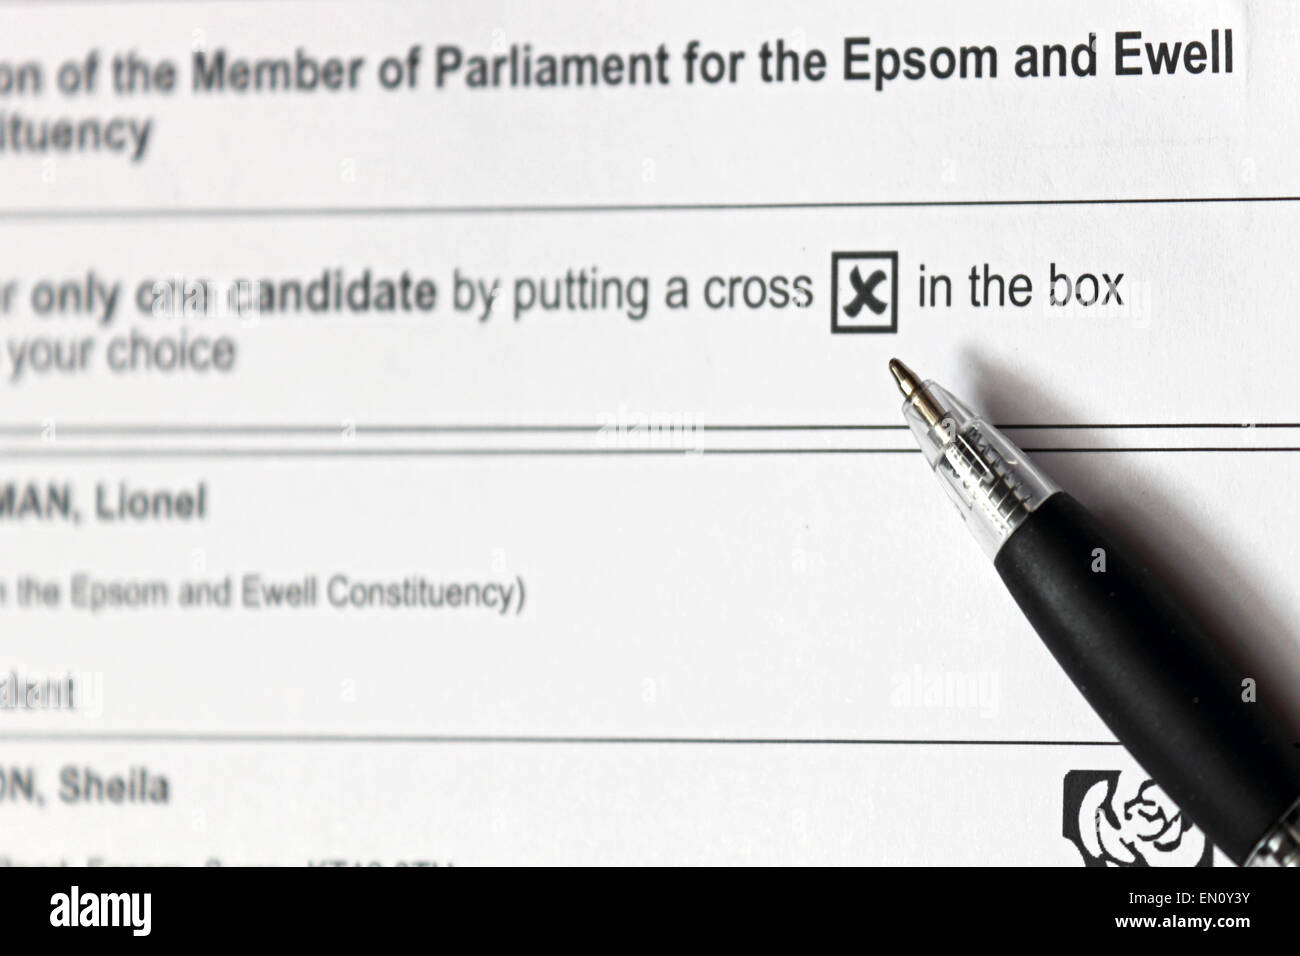 Epsom Surrey England UK. 25th April 2015. Postal ballot papers arrive for the Parliamentary election in the borough - Stock Image